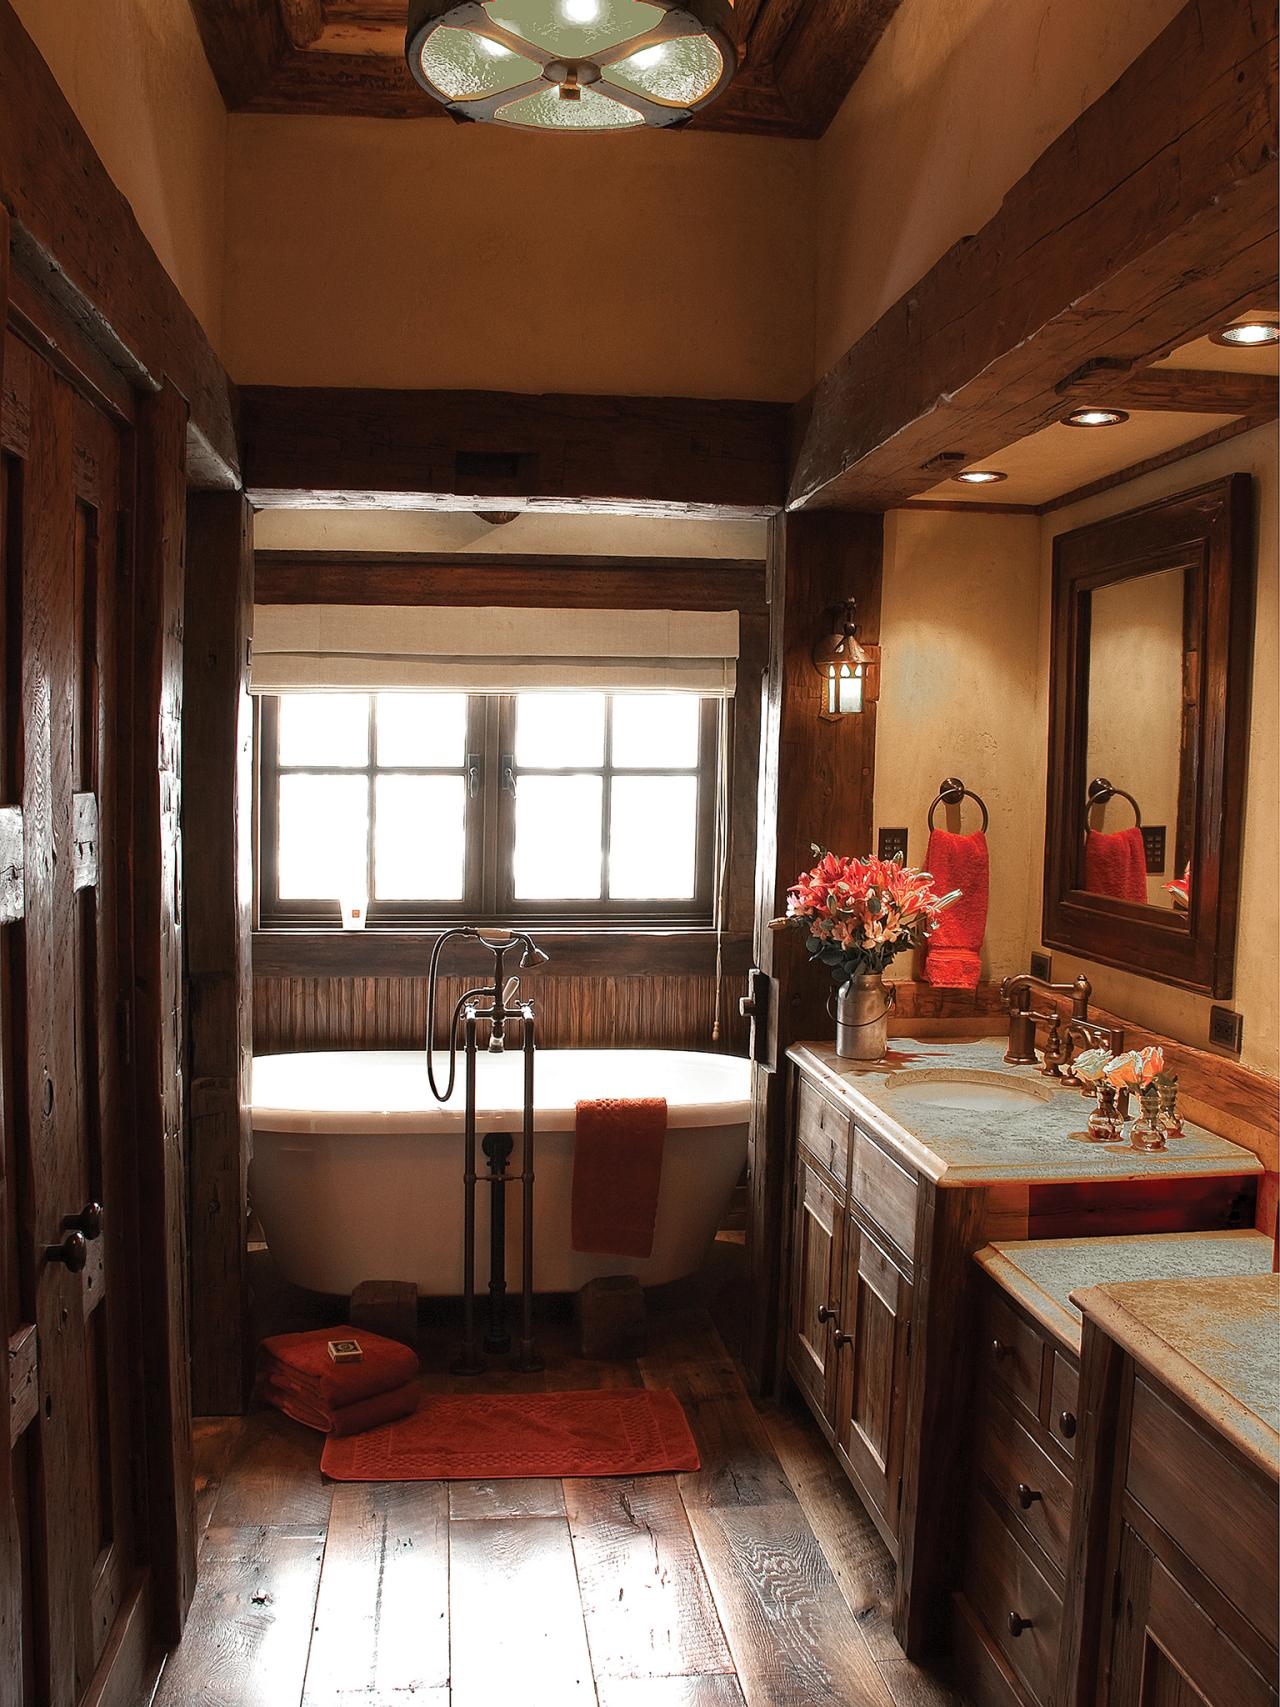 Rustic bathroom decor ideas pictures tips from hgtv hgtv for Northwoods decor